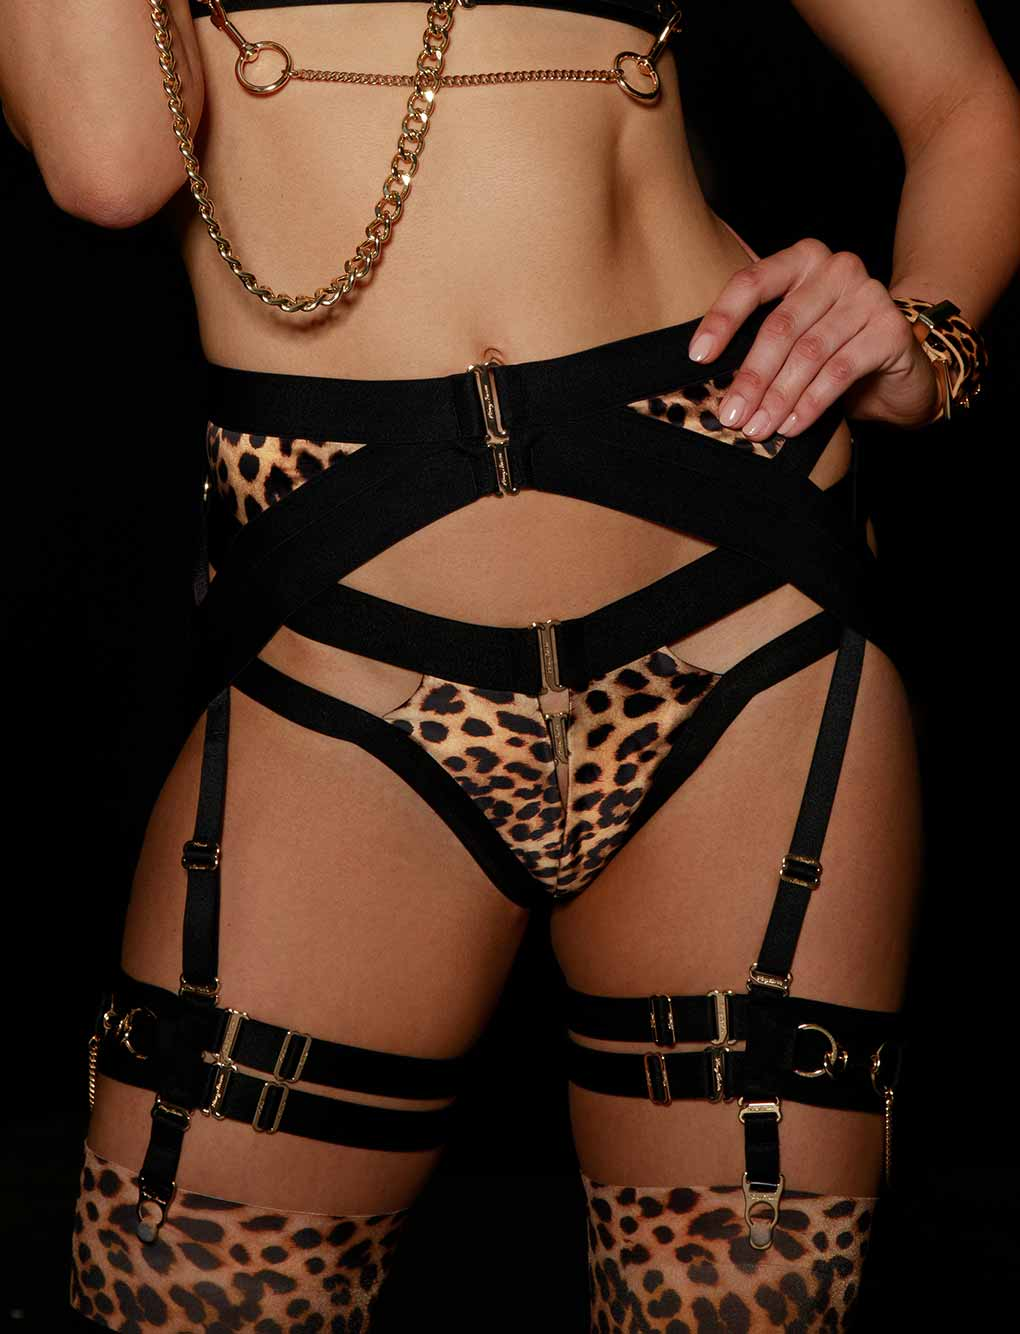 Kukuro Leopard Garter Belt | Shop Garter Belts | Honey Birdette